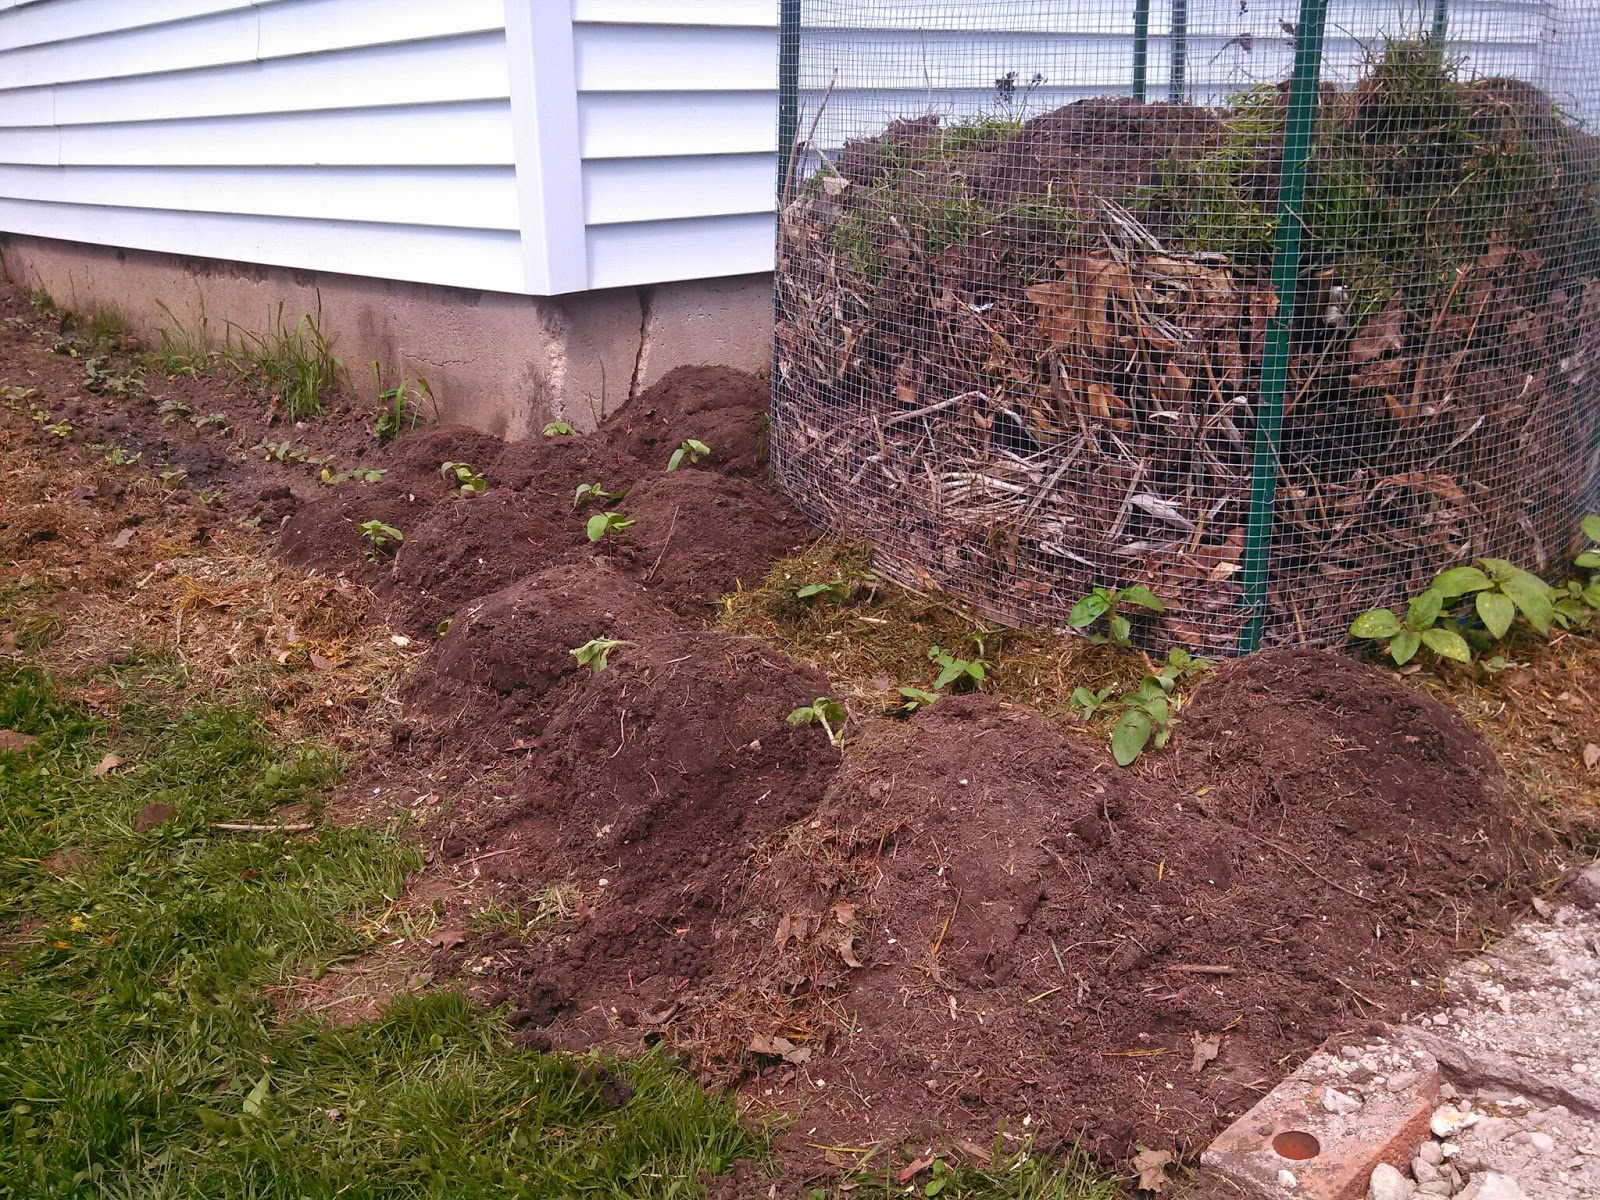 i have a garden full of volunteer sunflowers with no where to put them so i outlined the garage and compost piles then i planted little hills with